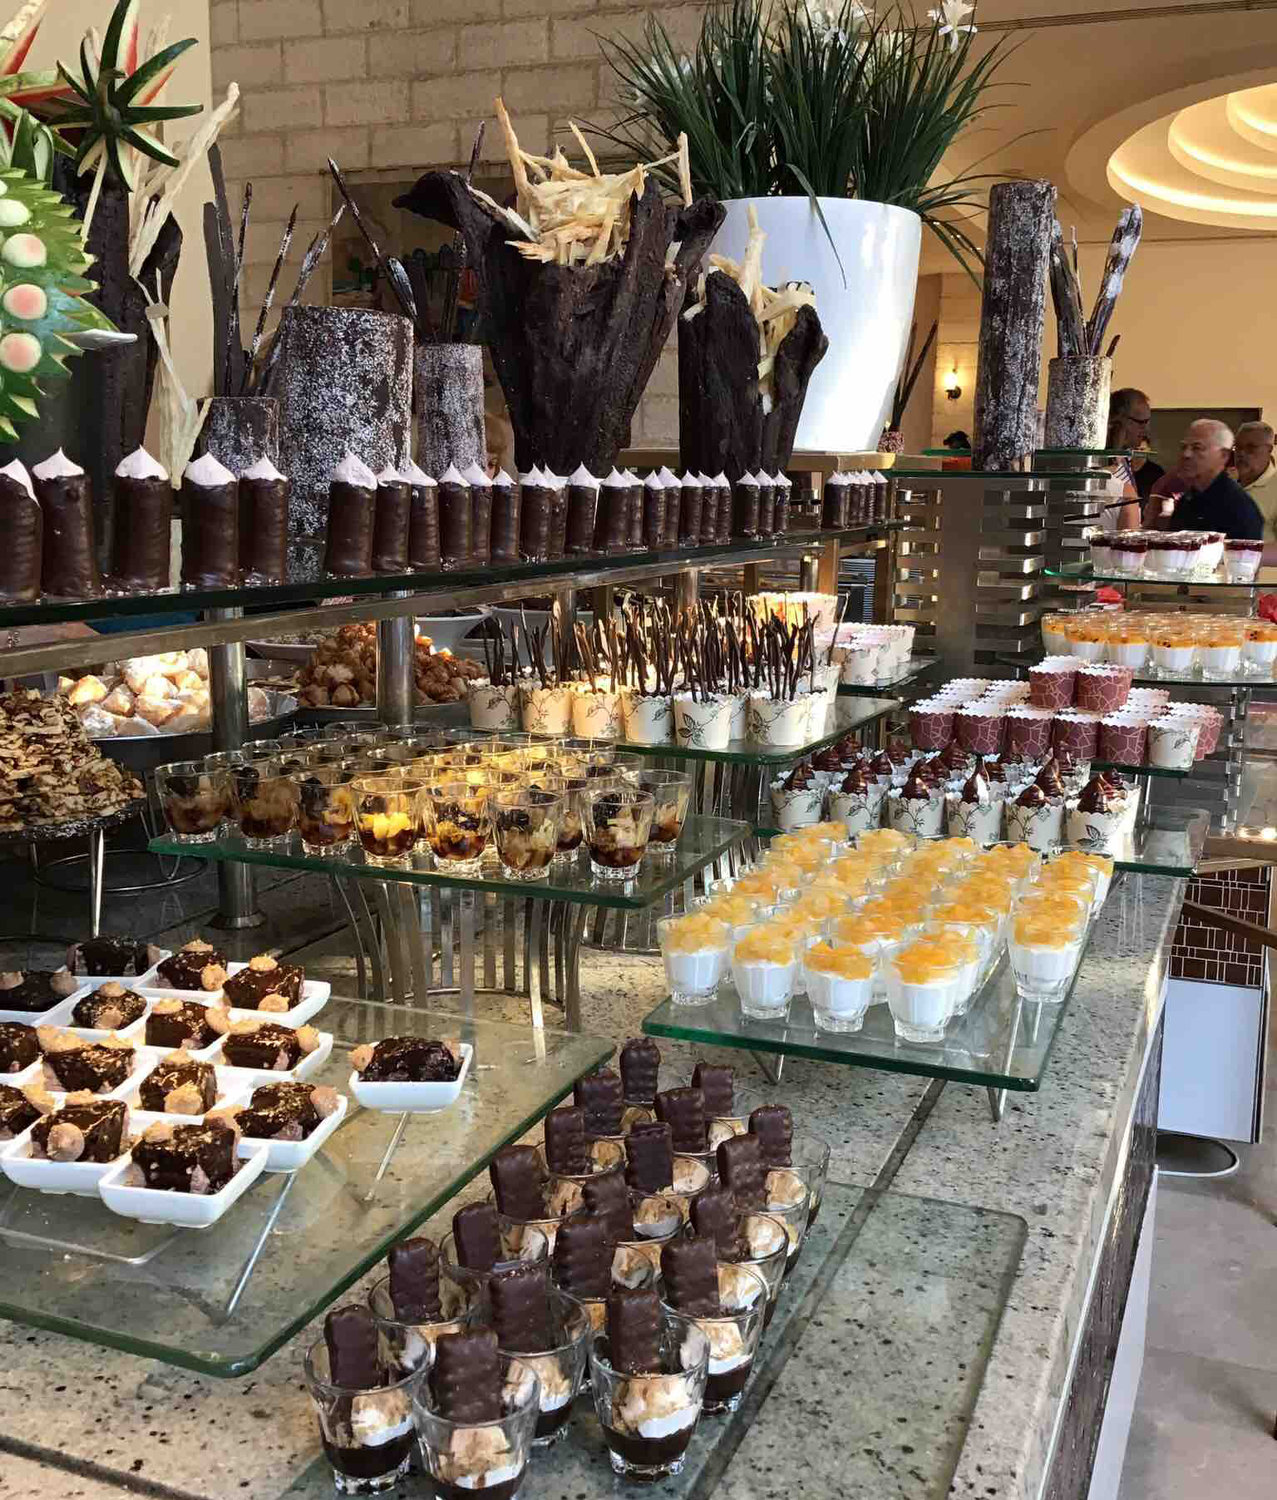 In Israel, buffet dinners had elaborate desserts.